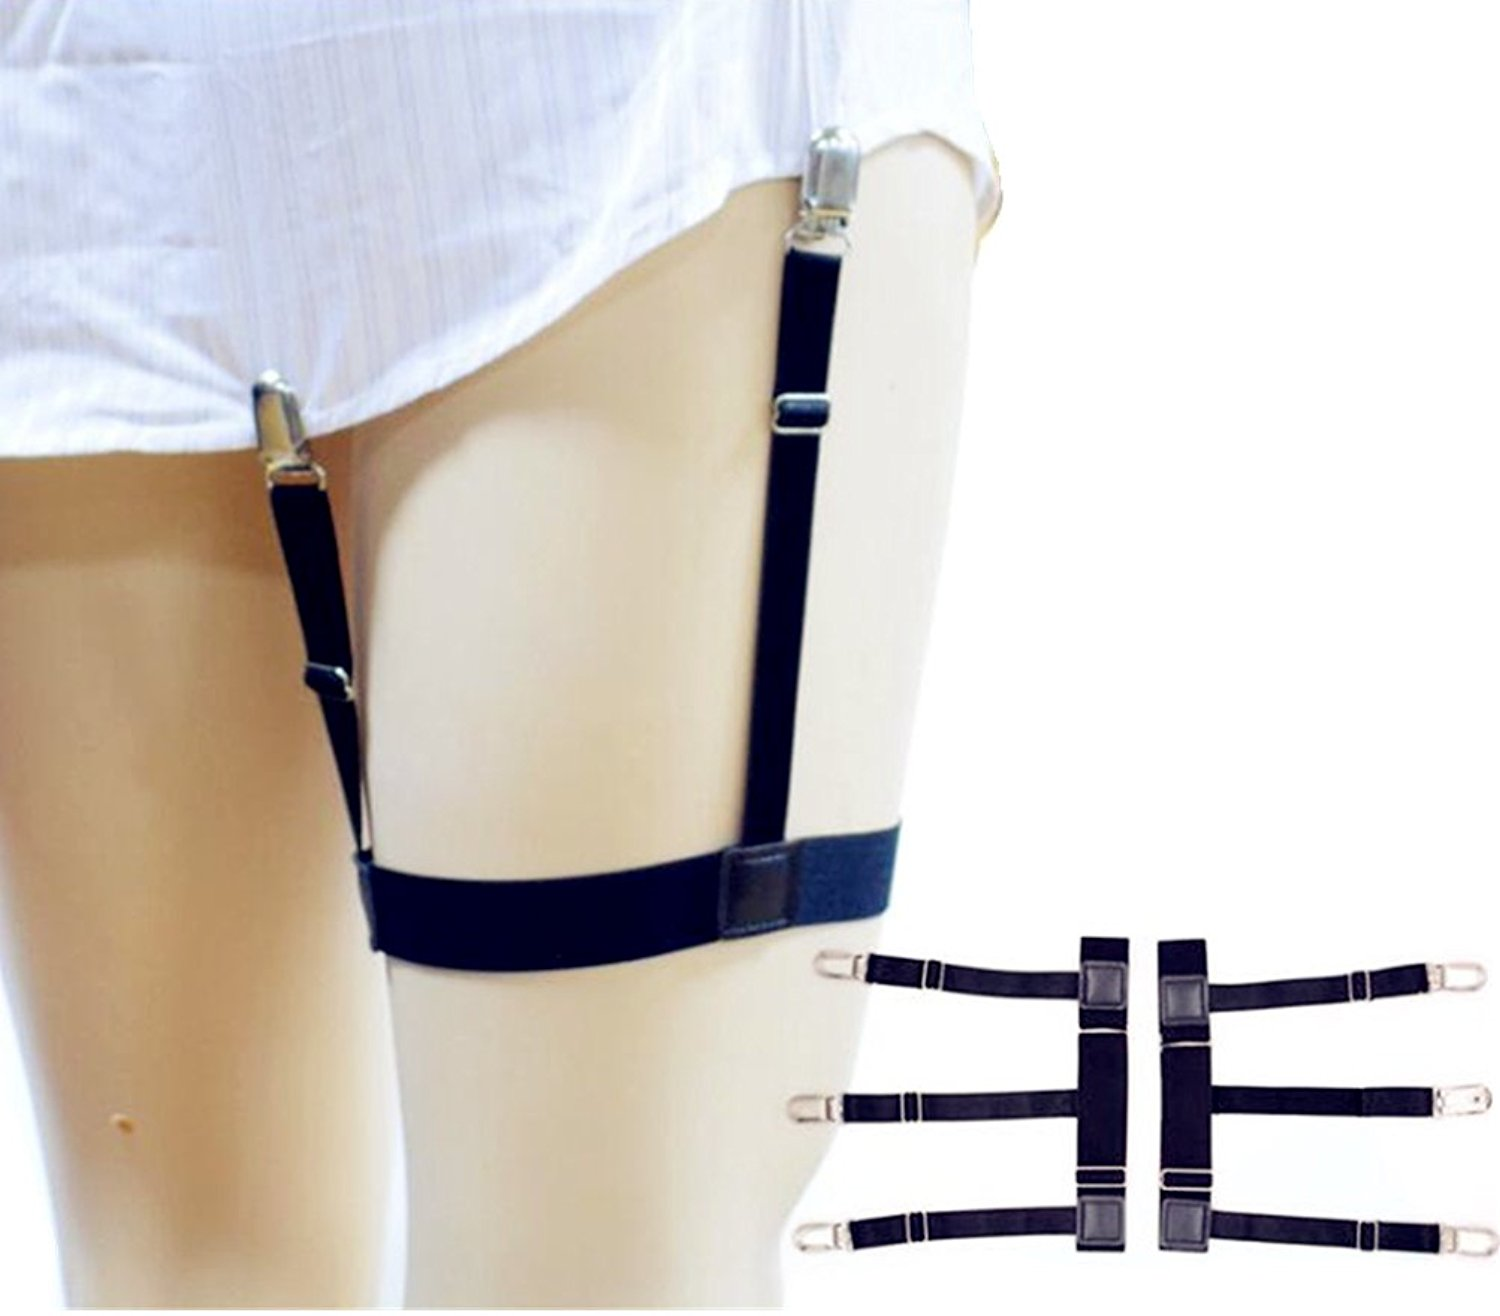 f88aa958ca7 Get Quotations · Mens Shirt Stays Garters Suspenders Shirt Holder Elastic Adjustable  Belts Straps Non-Slip Locking Clamps